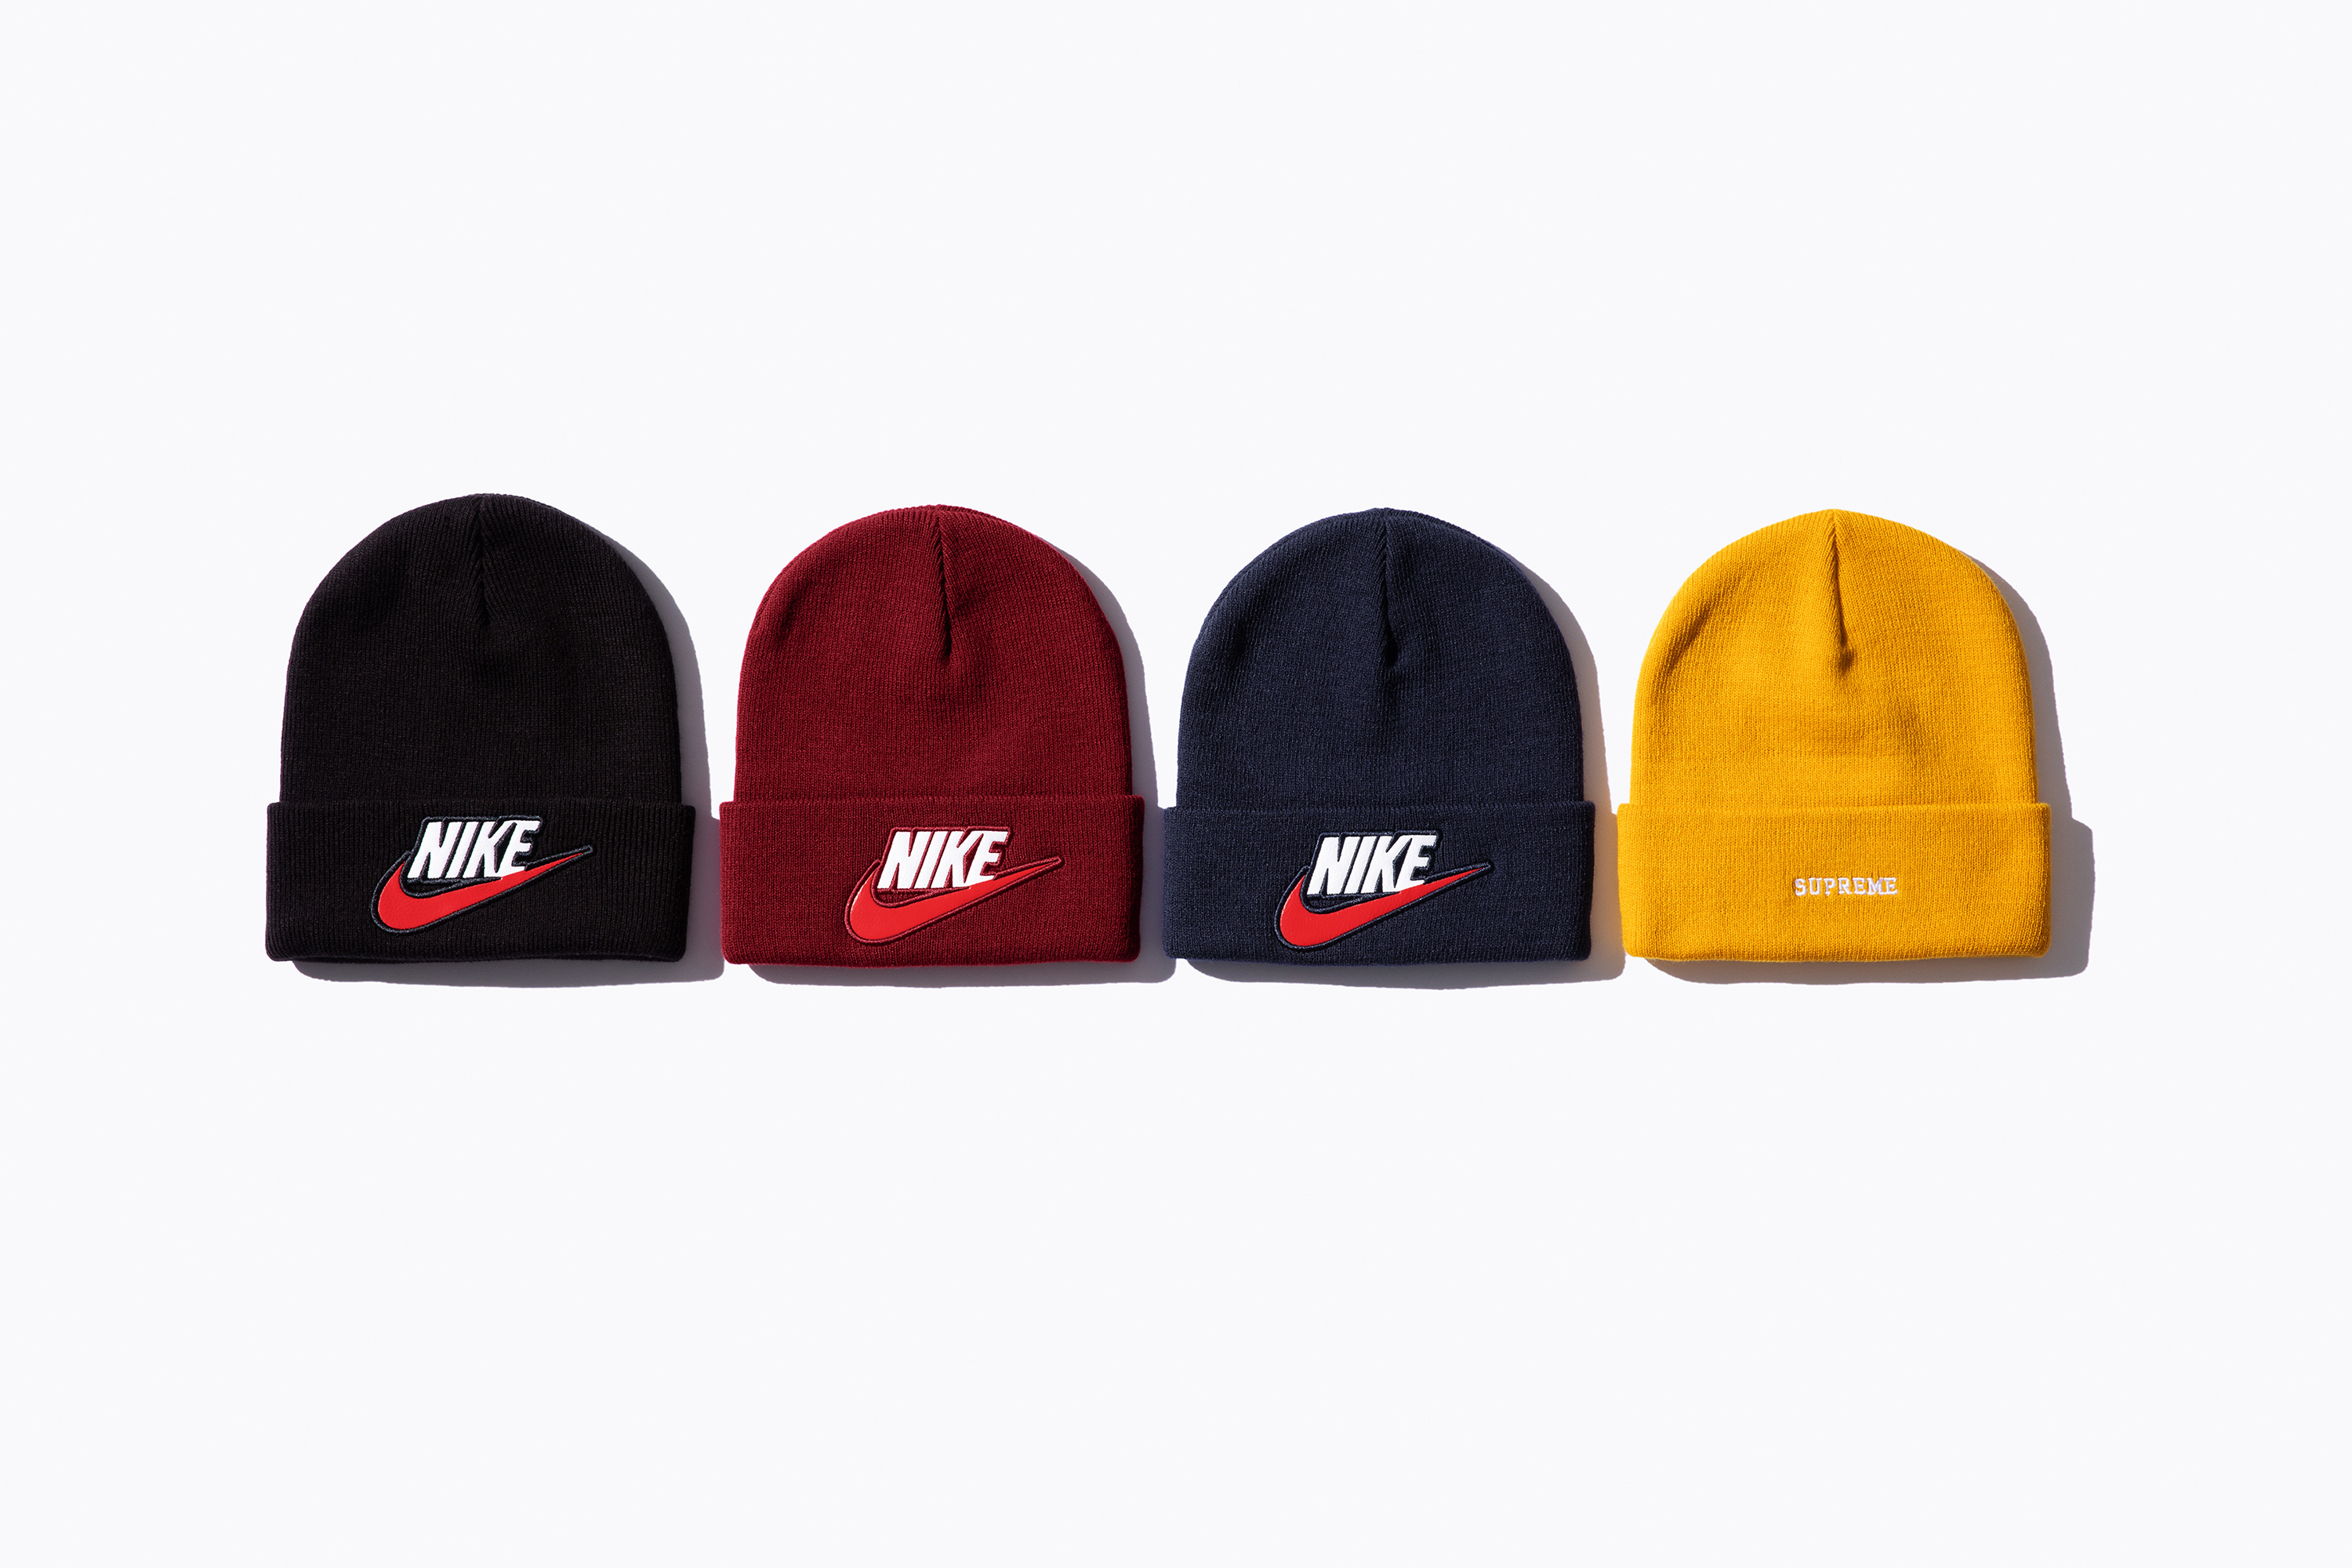 The Supreme x Nike FW 18 collection arrives online and at the NY 824ac7cec3ac